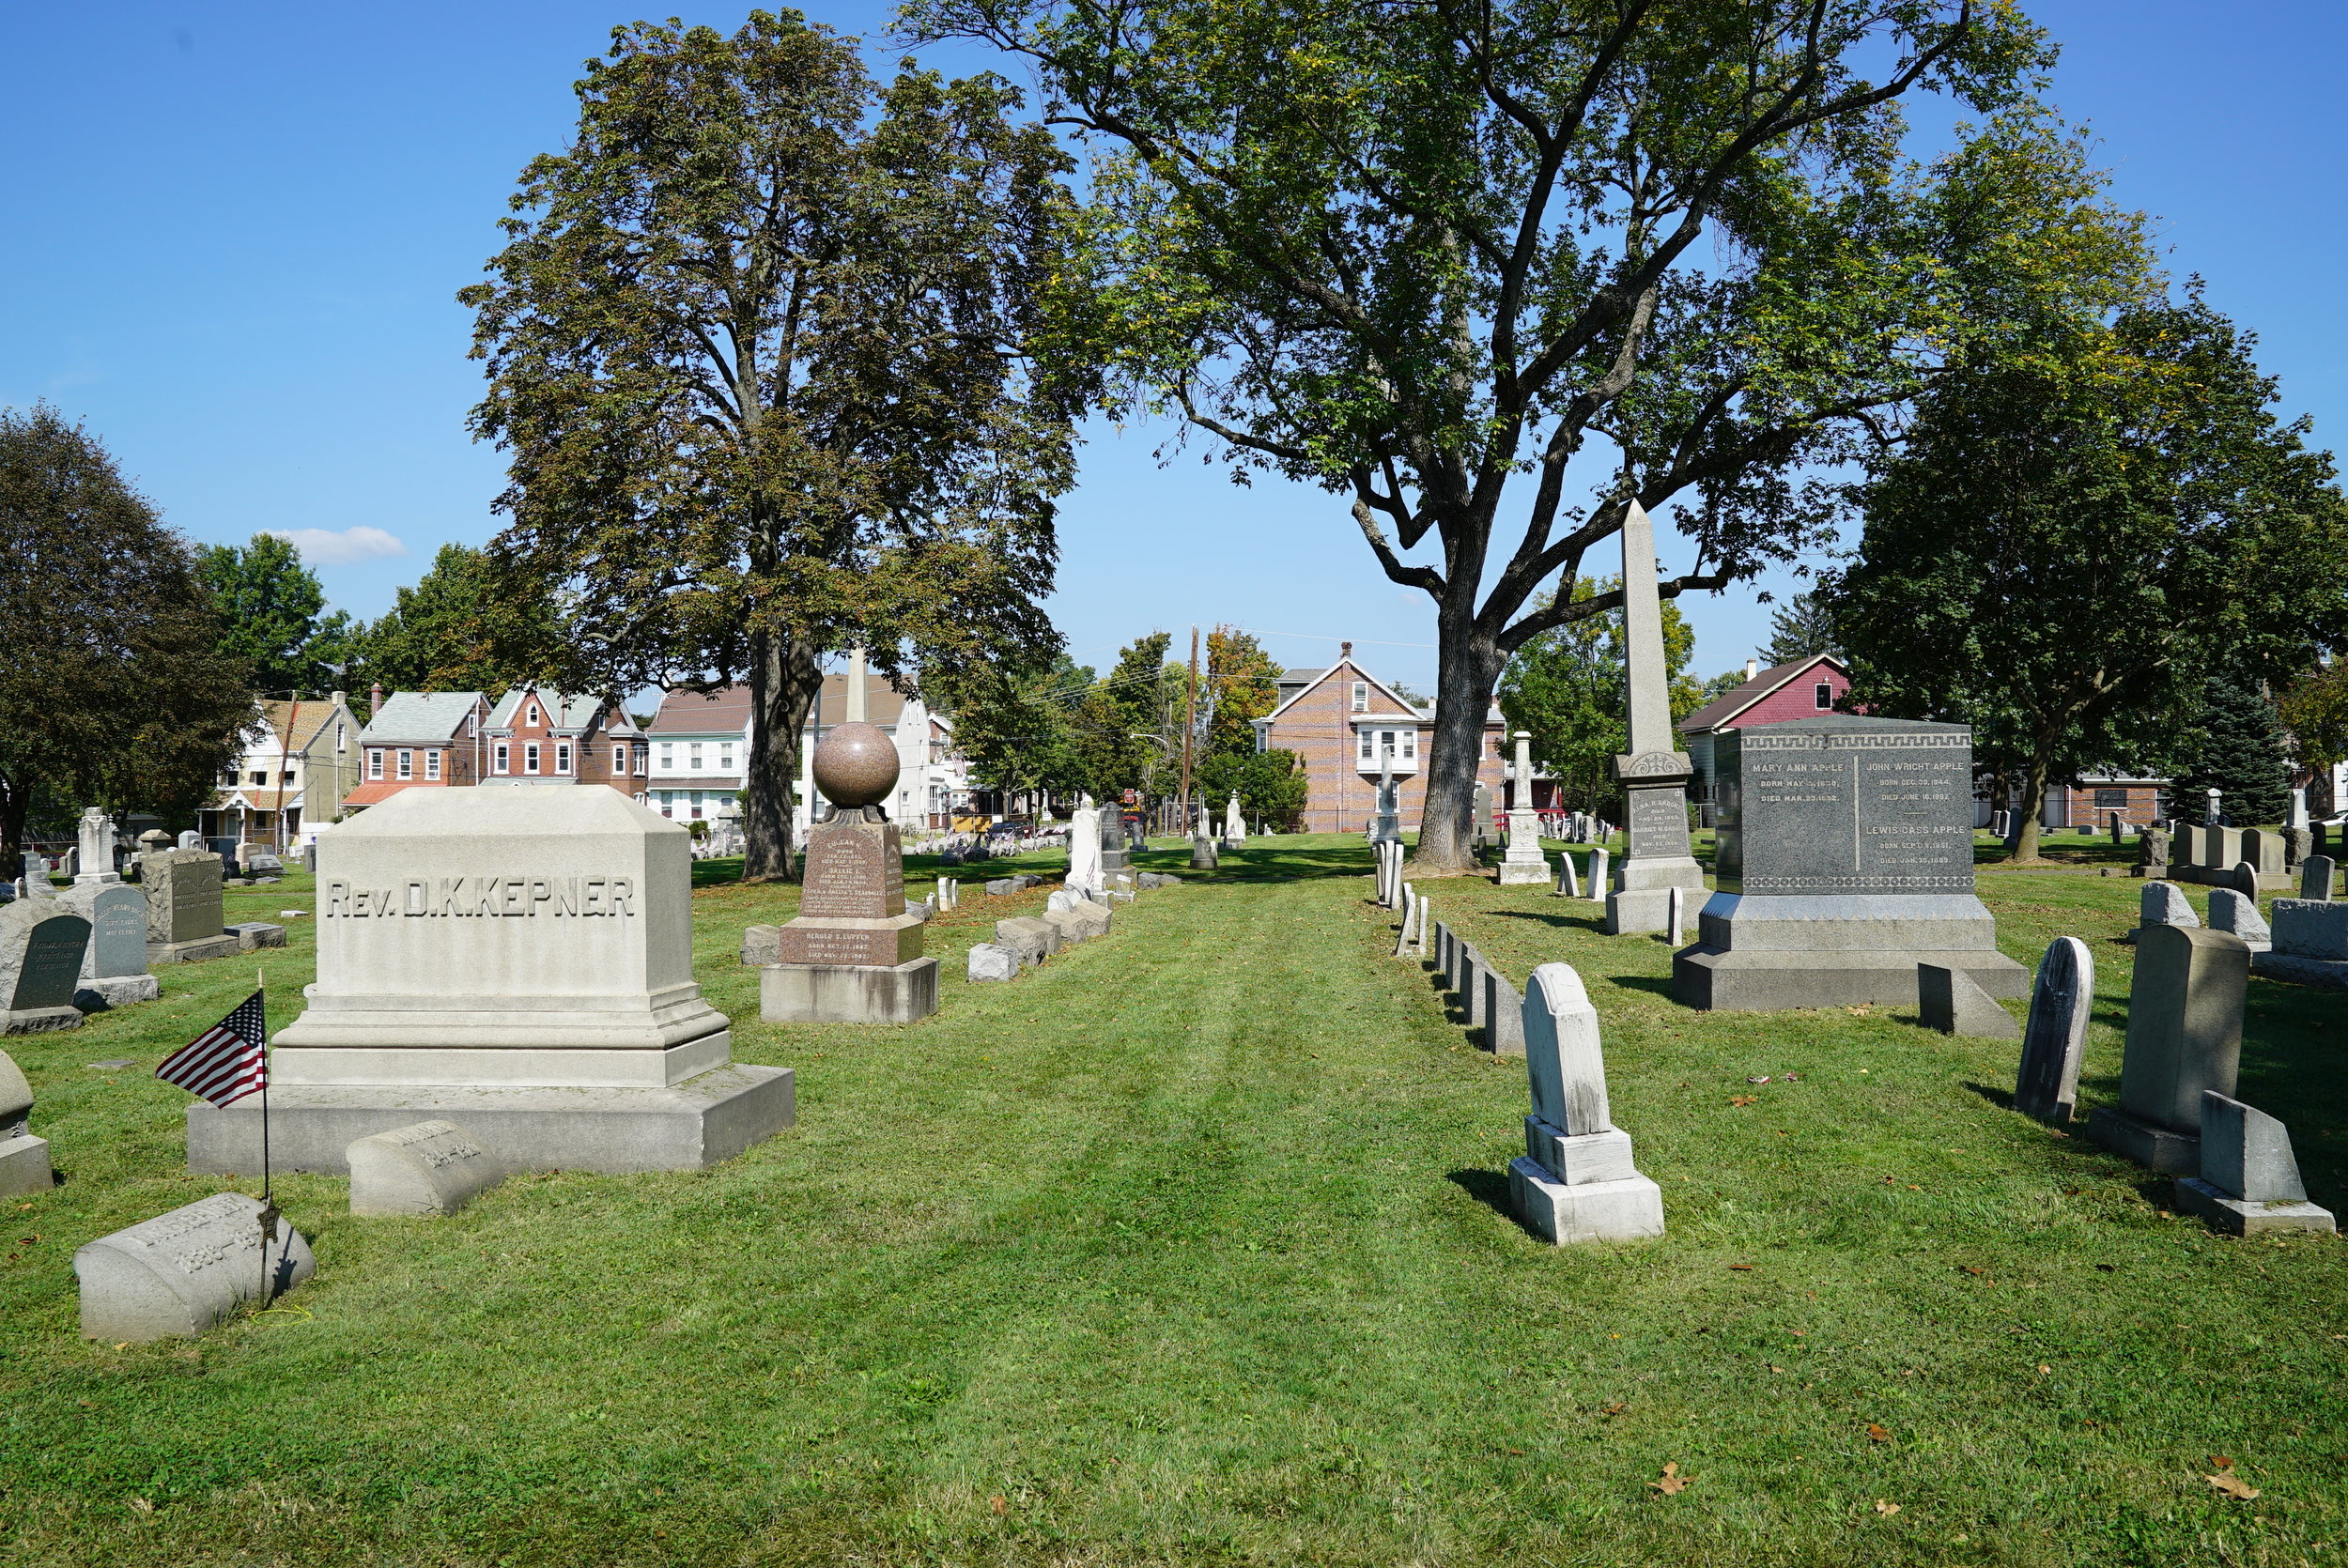 A view from the east side of Pottstown Cemetery. Pottstown, Pennsylvania.